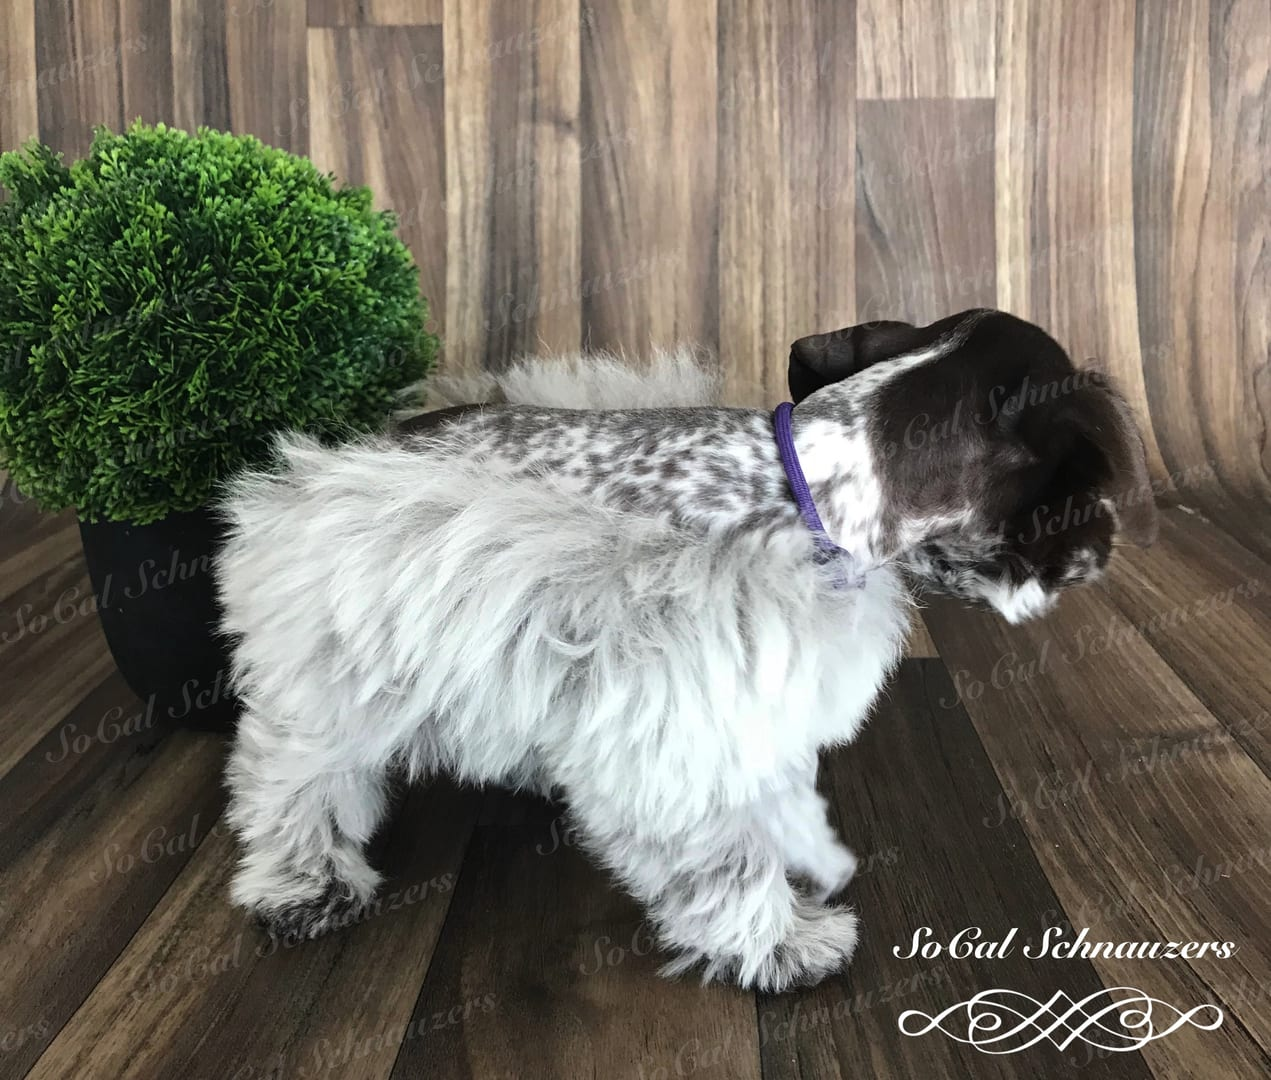 Black and white speckled schnauzer with plant behind it